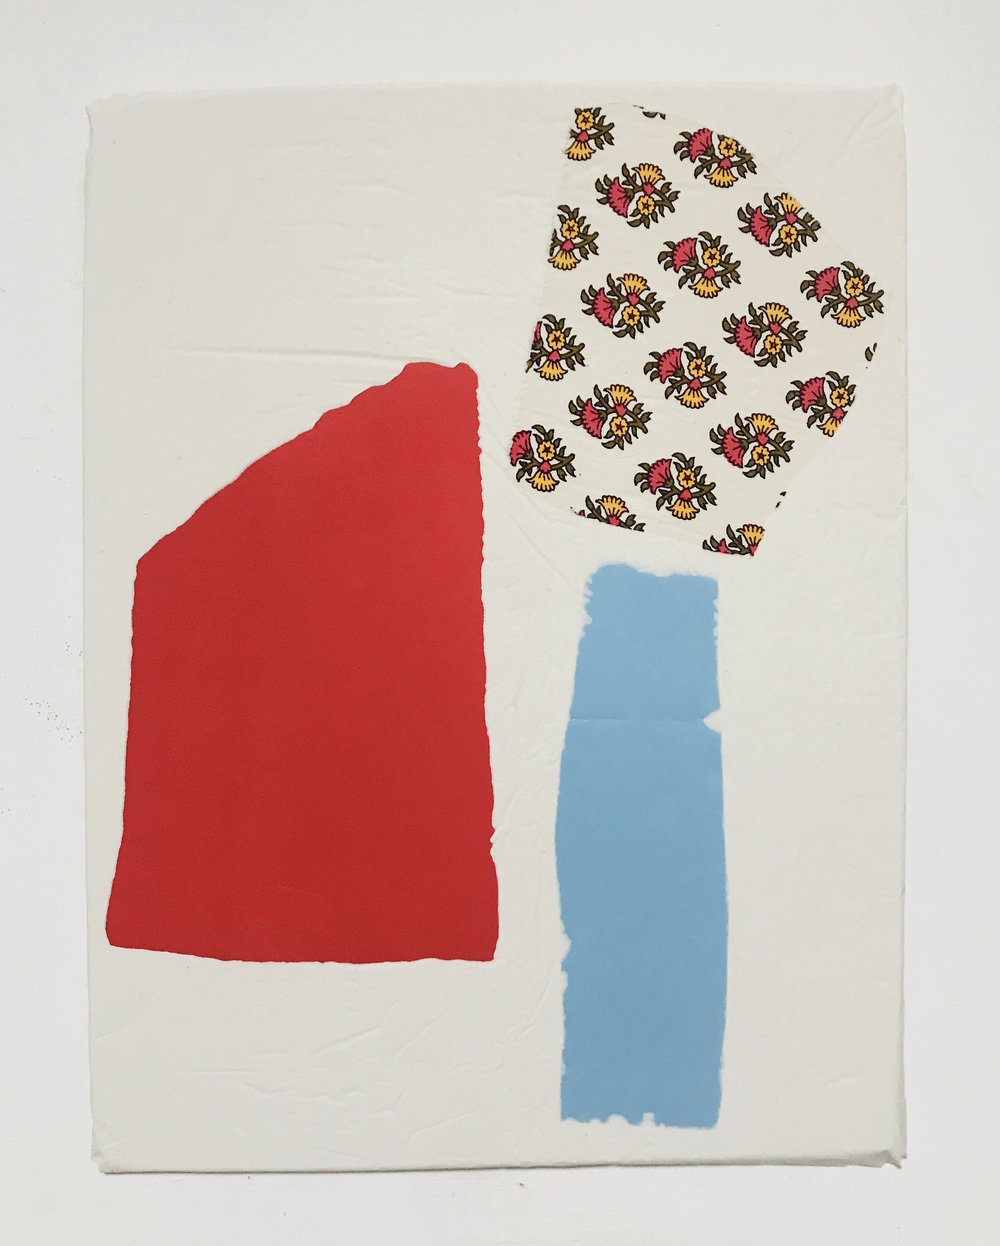 Untitled Fragment (red foam, blue pvc, cotton) | Composite and Mixed Media | 42 x 32cm